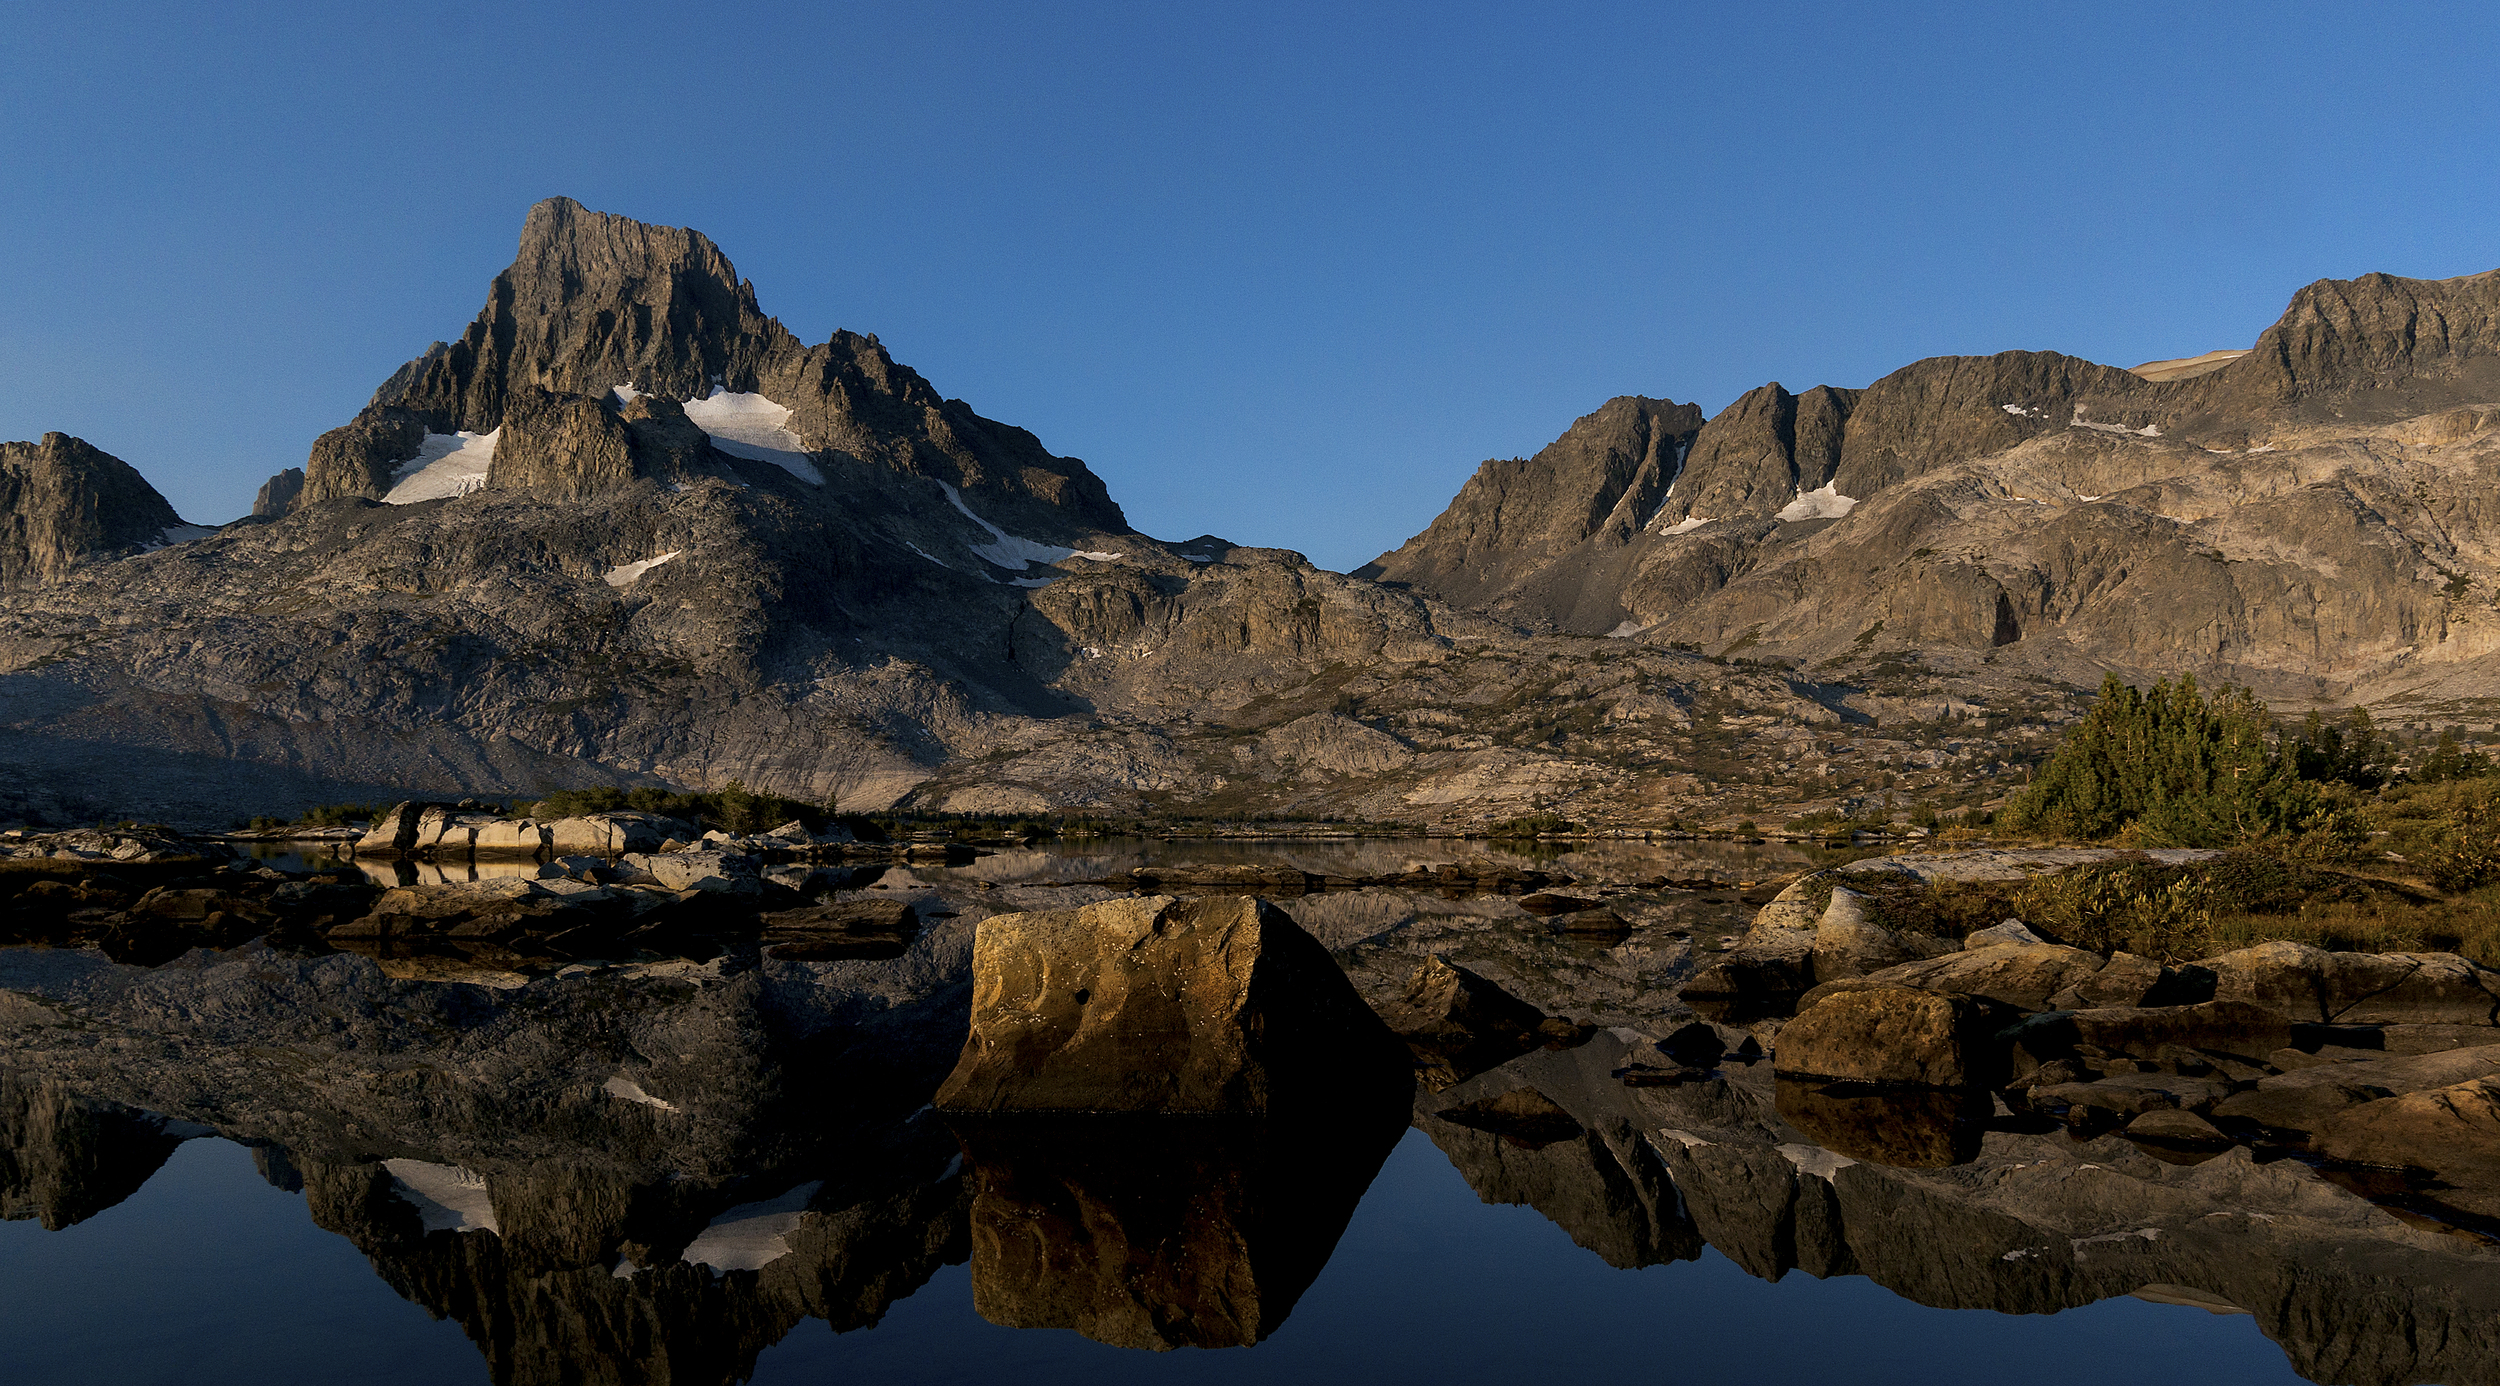 Banner Morning- Mt. Banner reflected in Thousand Island Lake